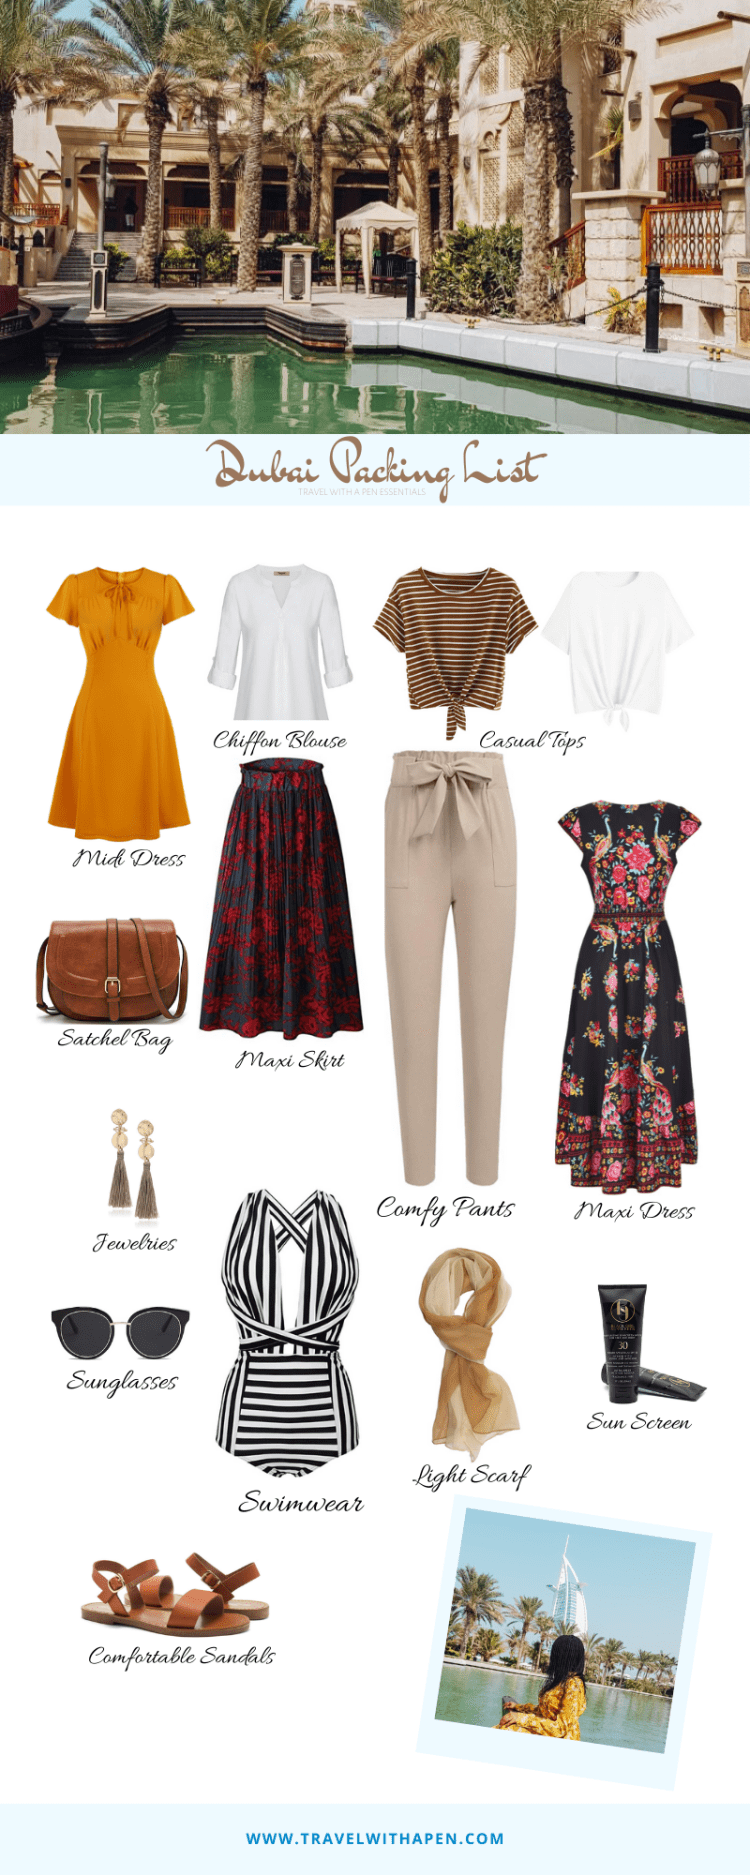 What to Wear in Dubai. Packing for a 5 day trip